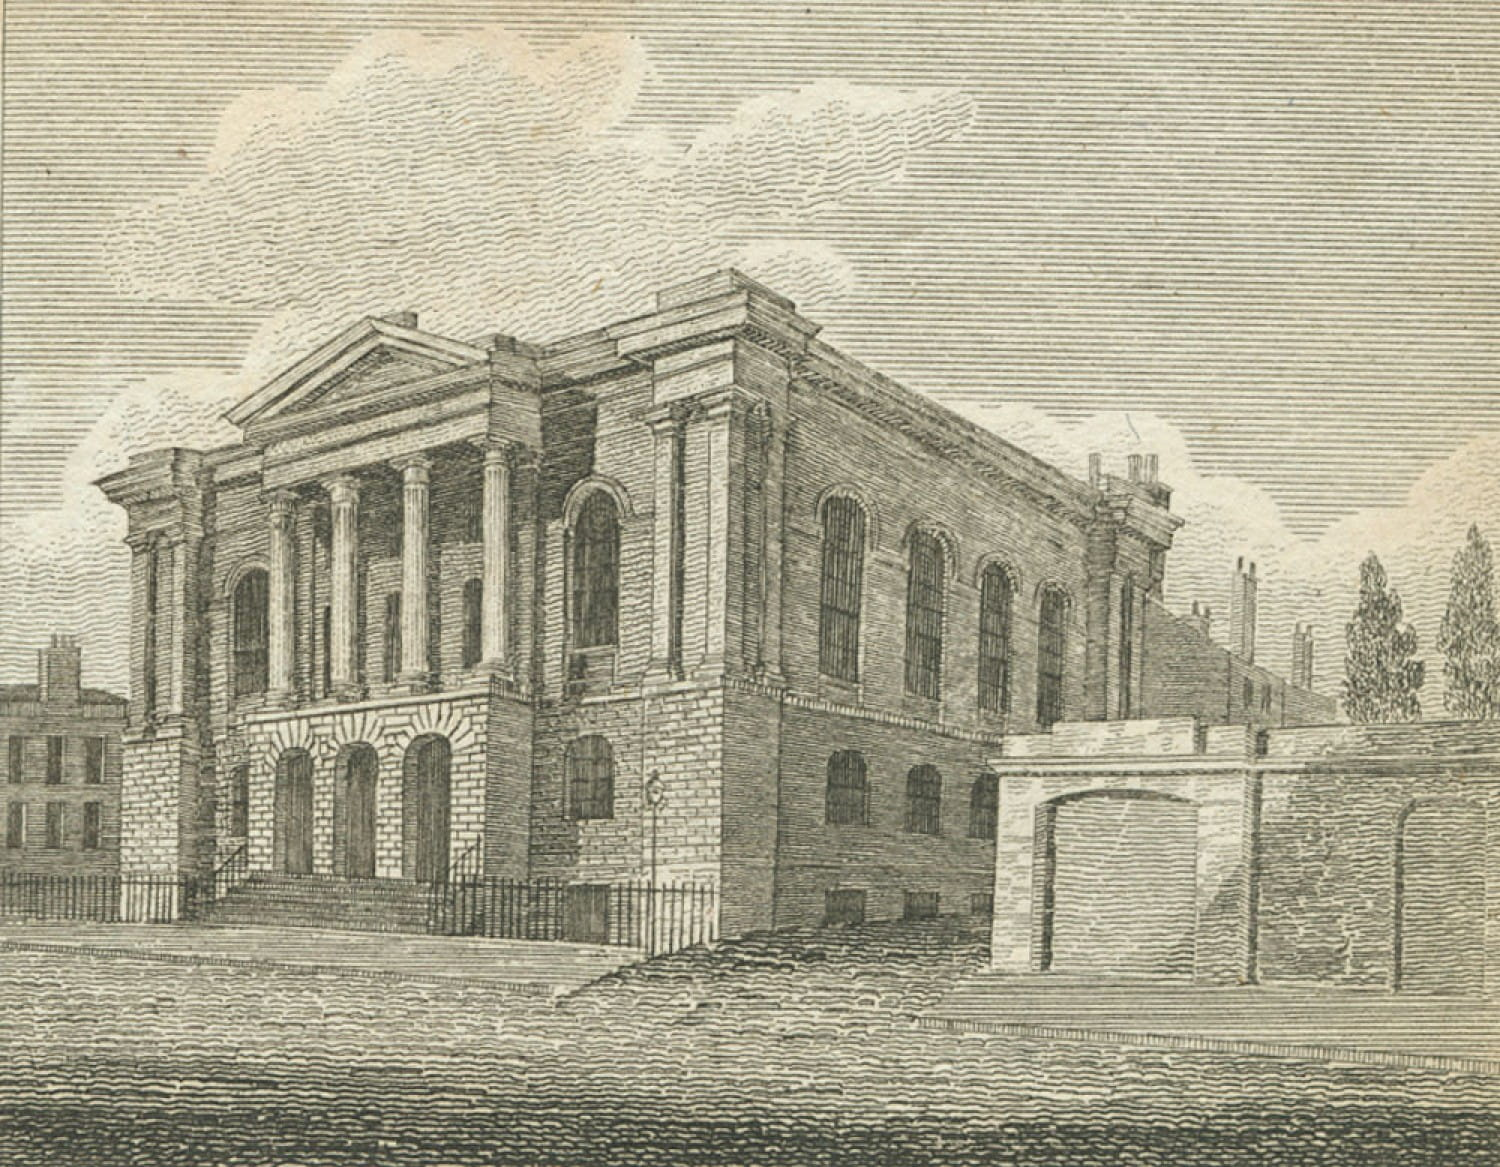 Dr Wardlaw's Chapel. Built in 1819, demolished in 1975 (Glasgow City Council Libraries)